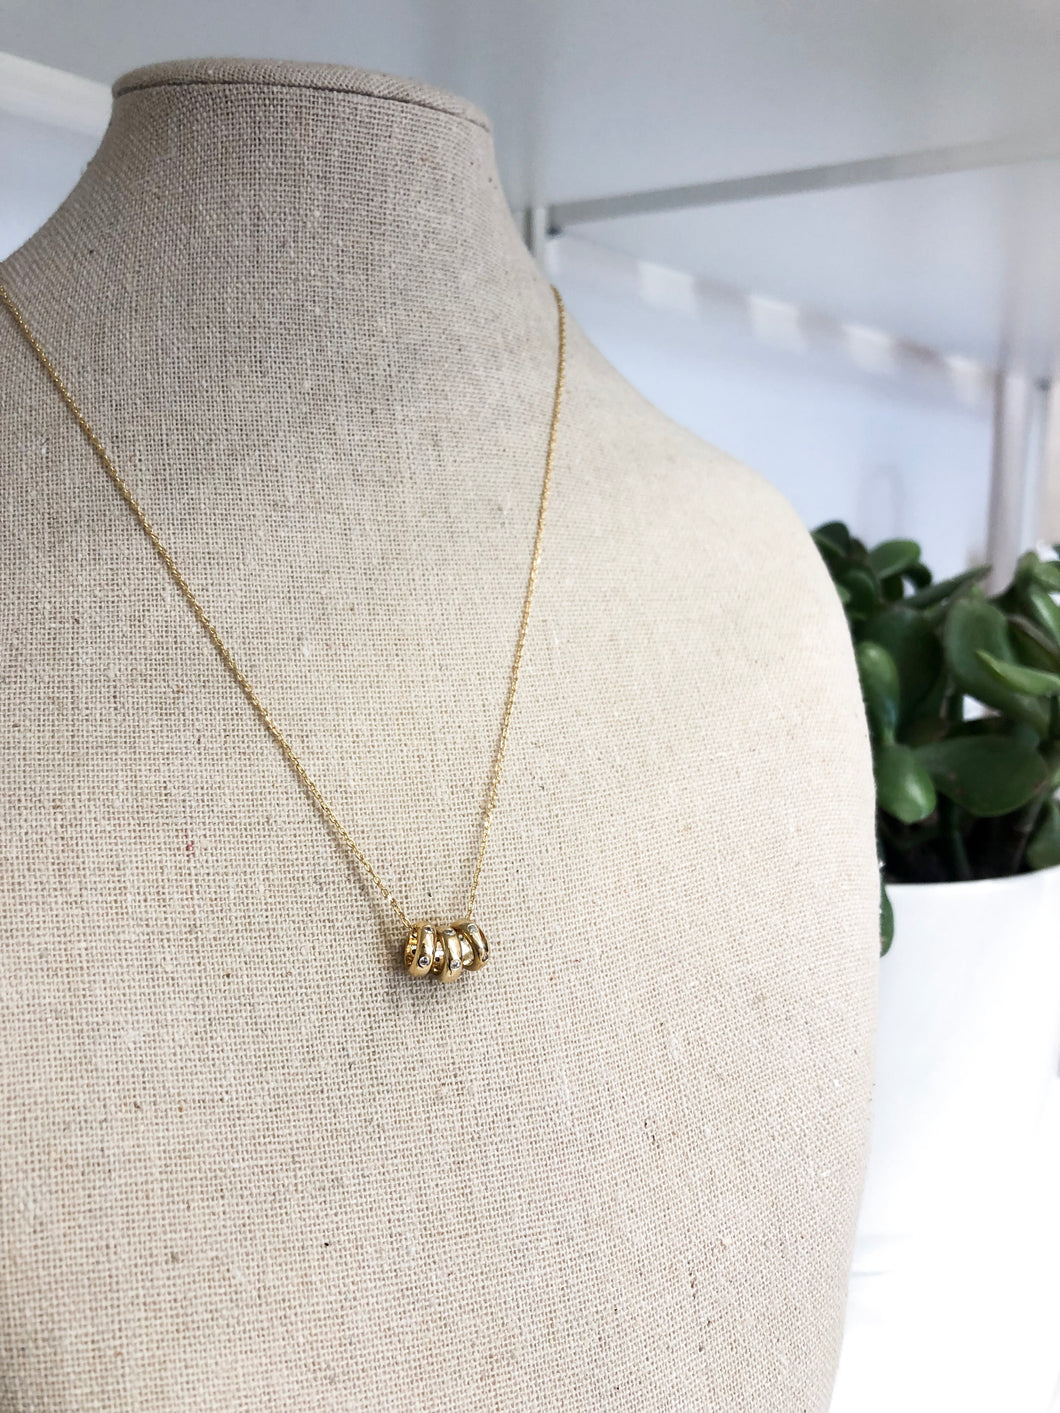 Antoni Necklace in Three Gold Rings